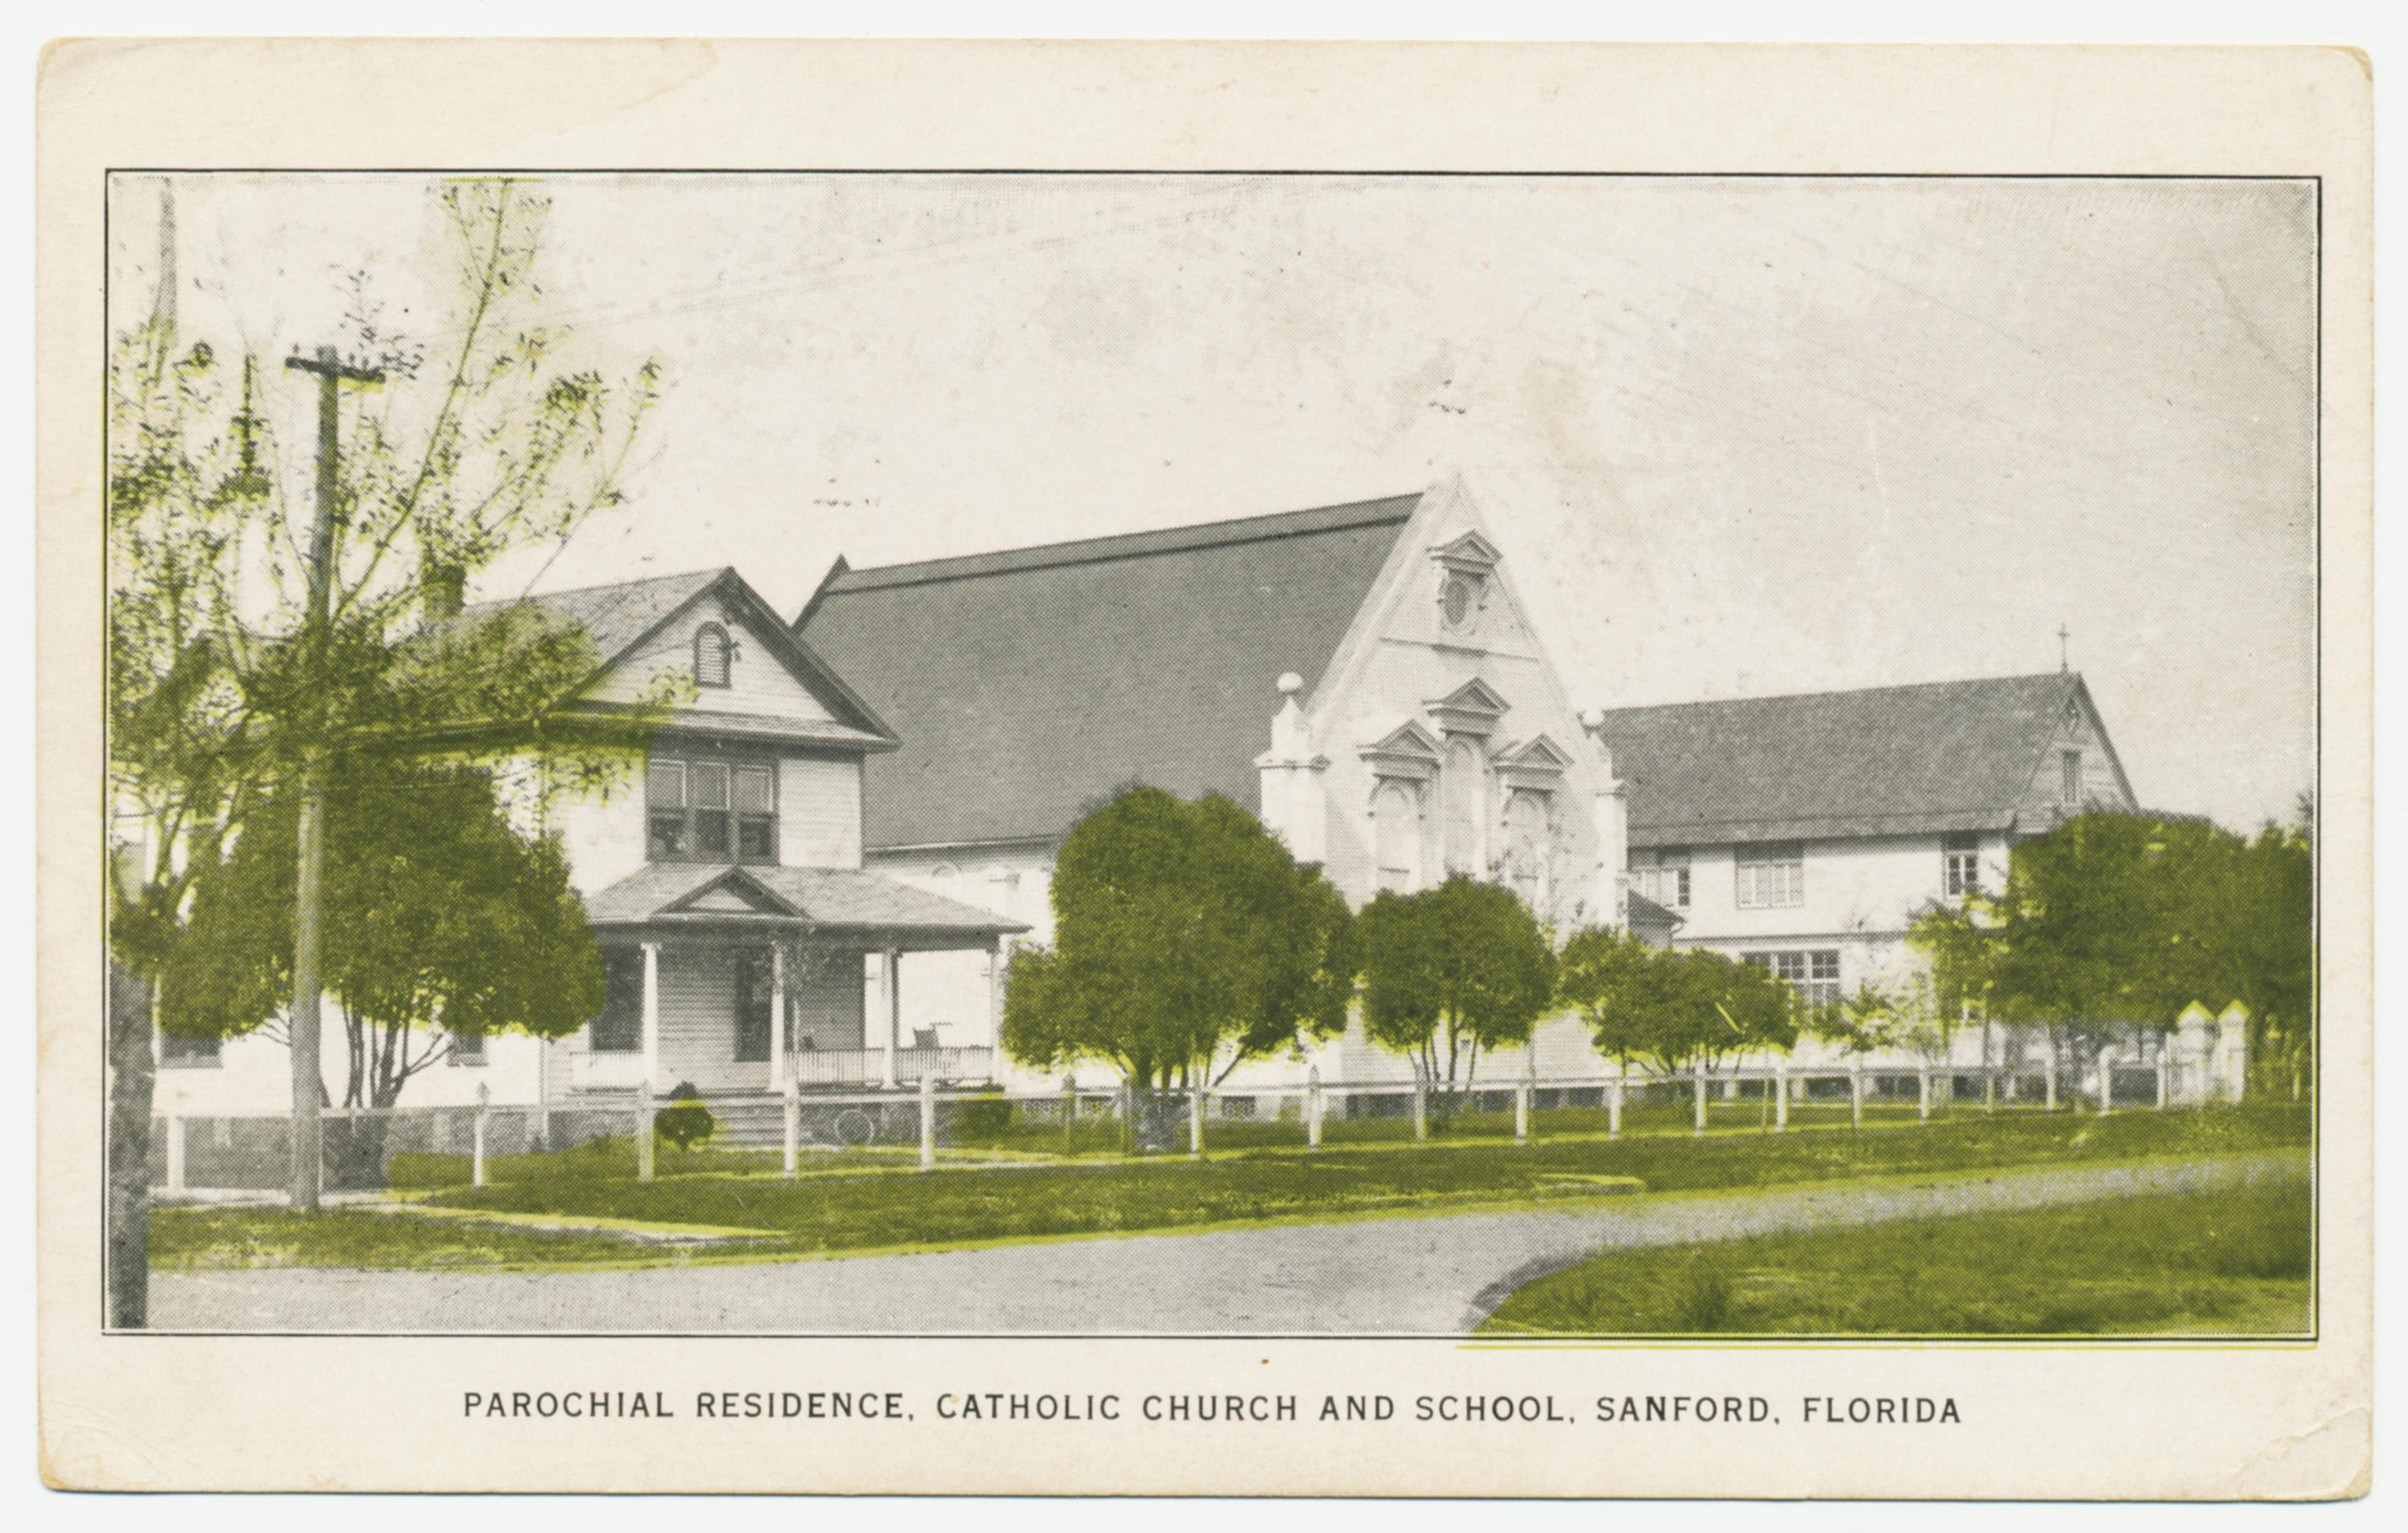 Photo of Rectory, Church and School